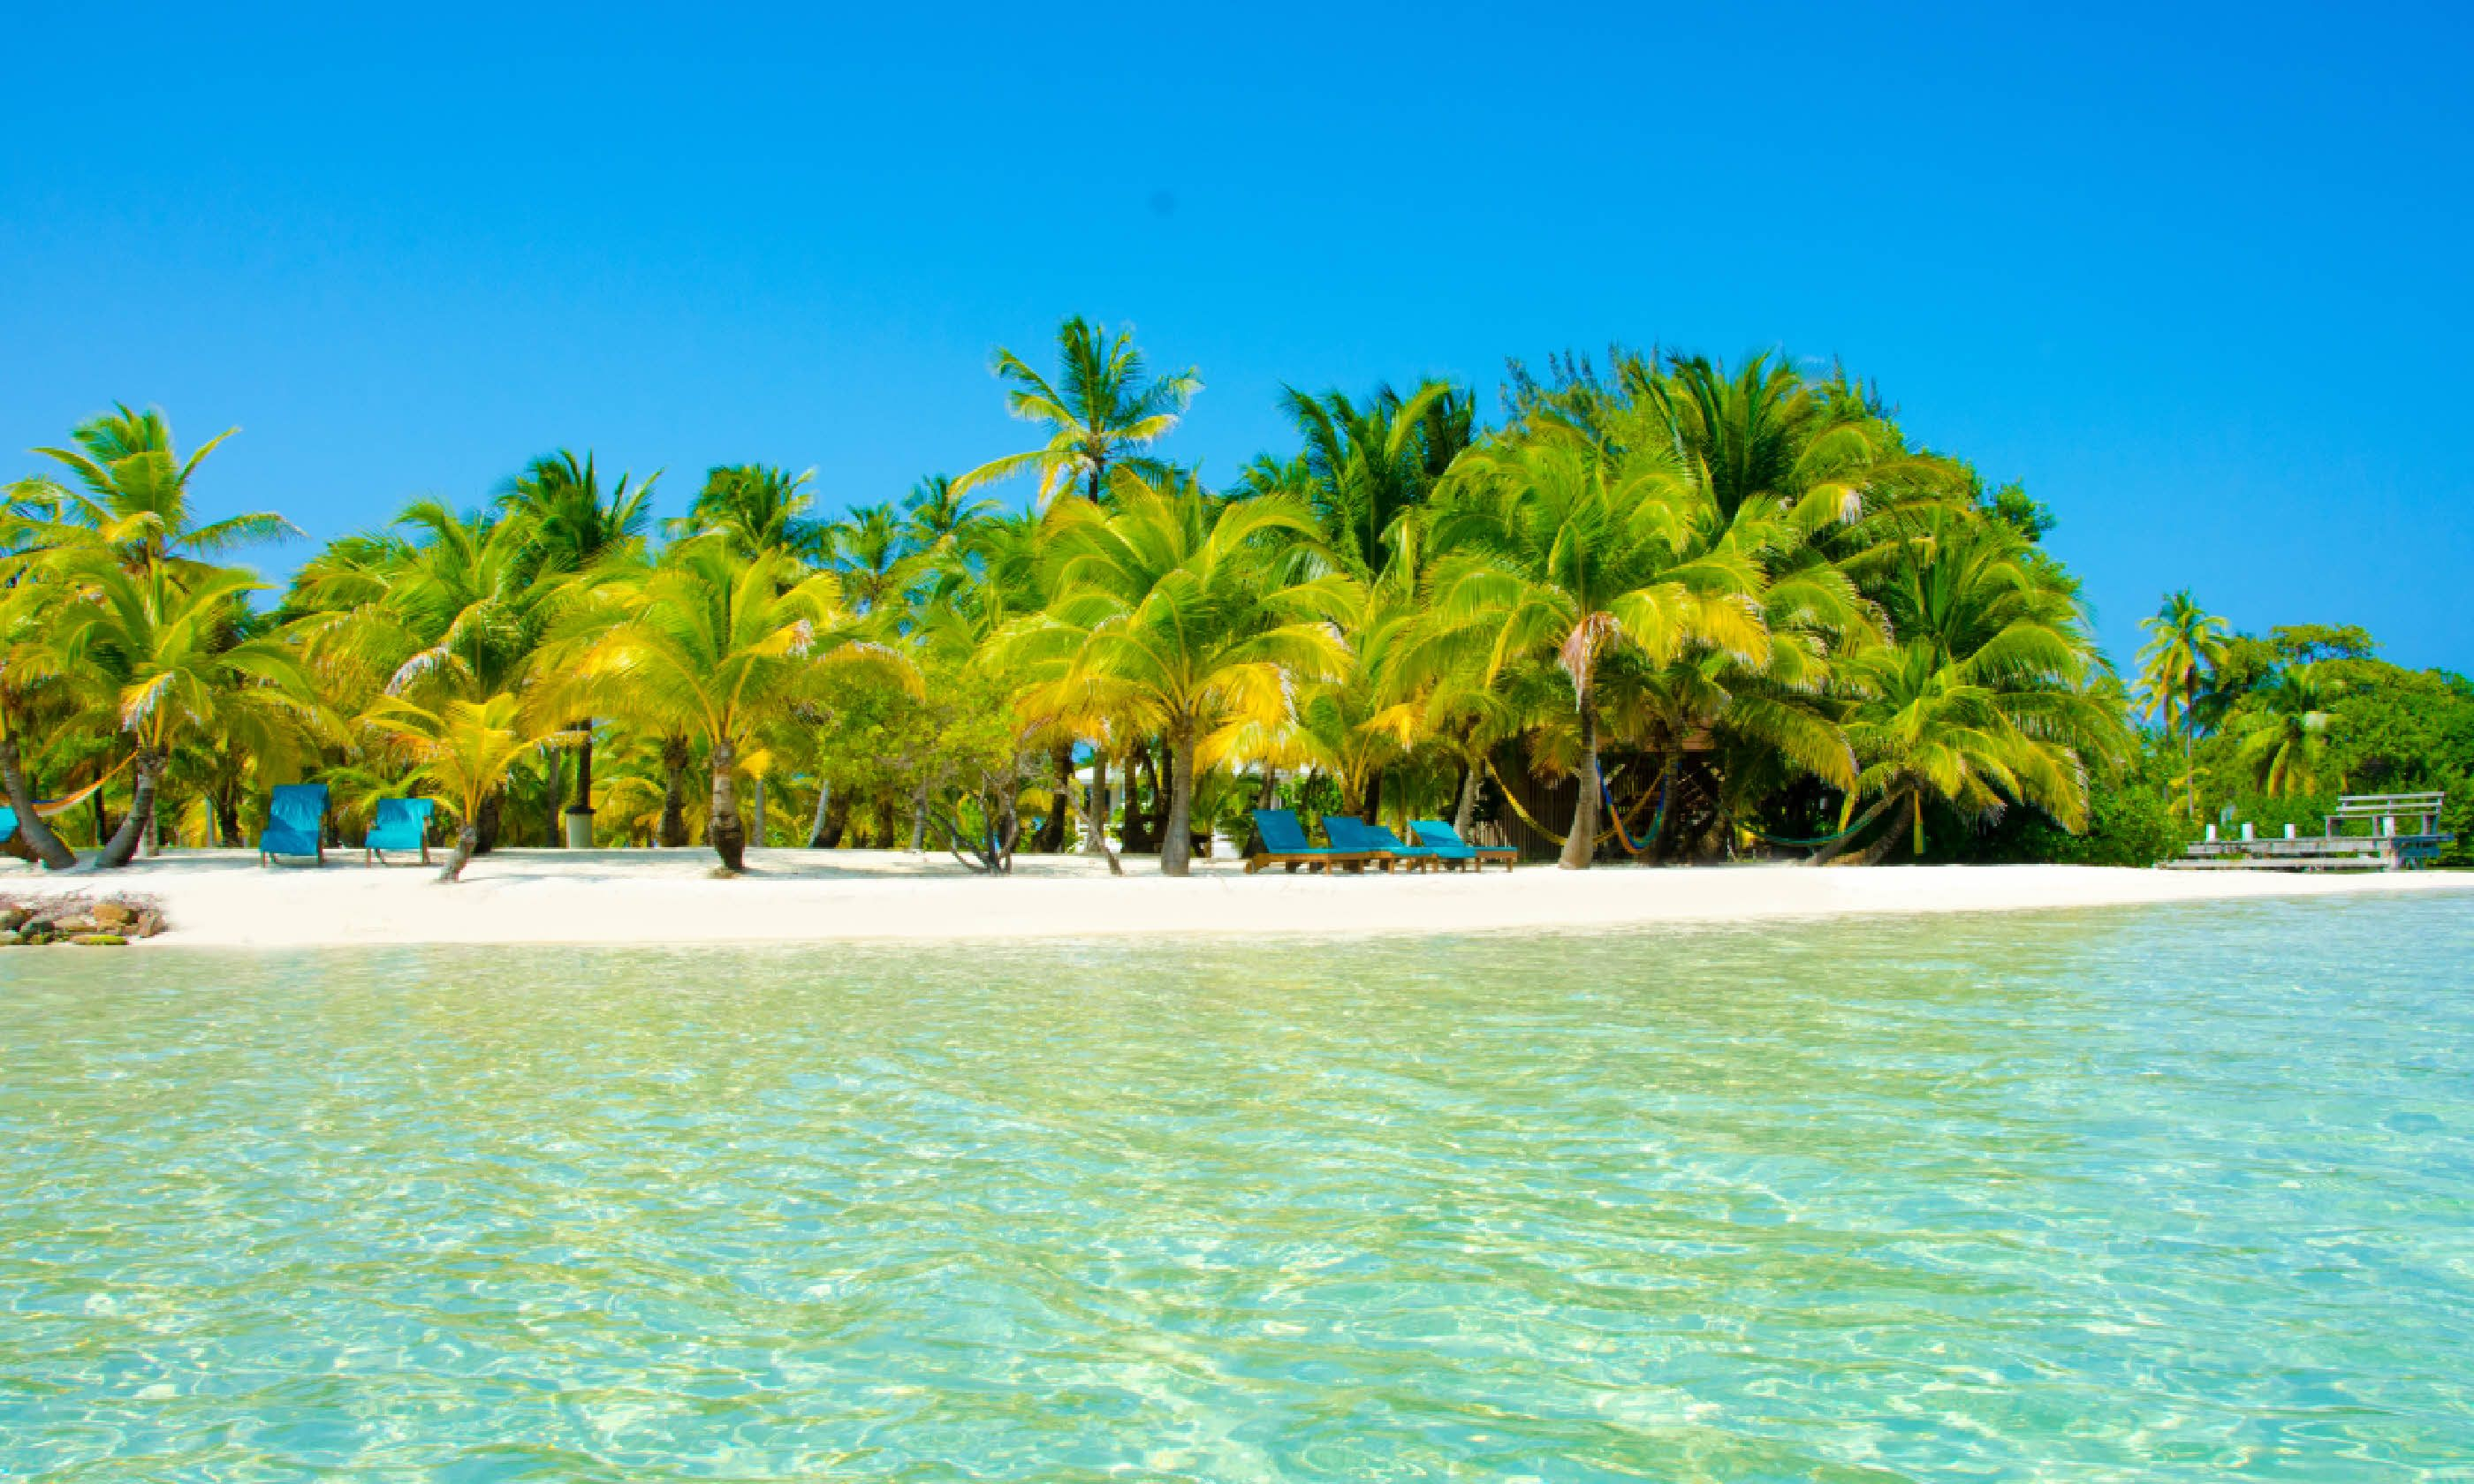 South Water Caye, Belize (Shutterstock)